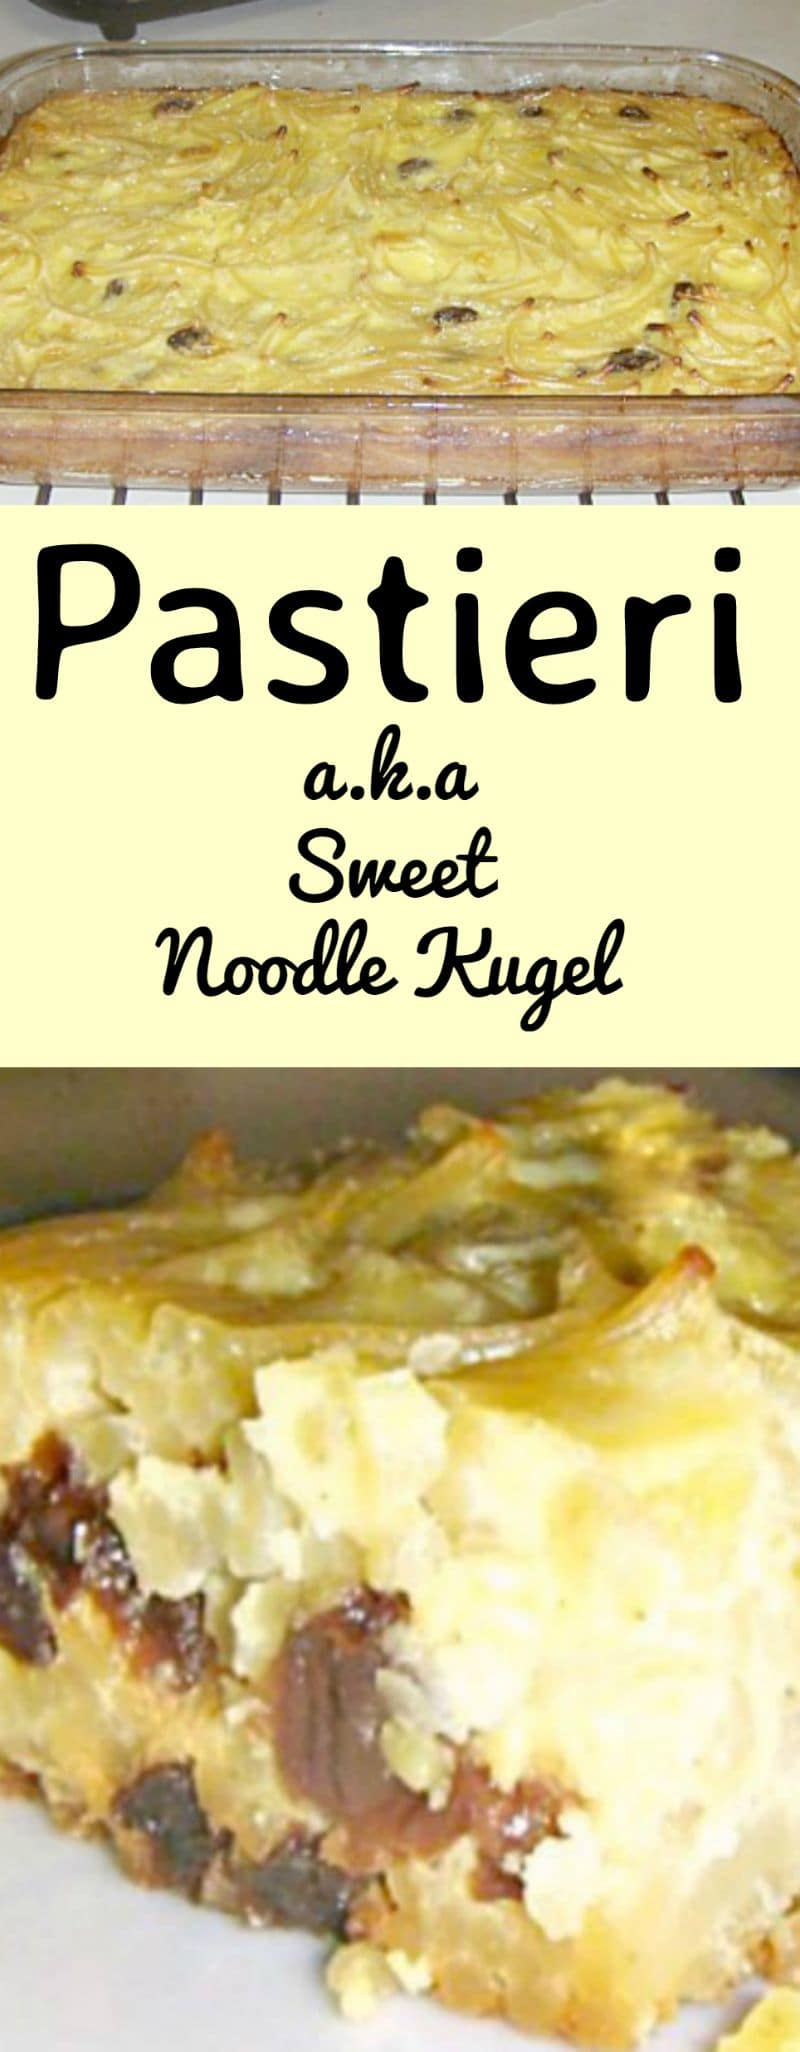 Pastieri, a.k.a Sweet Noodle Kugel. A really easy and delicious recipe and very budget friendly. Always a hit over the holiday season!